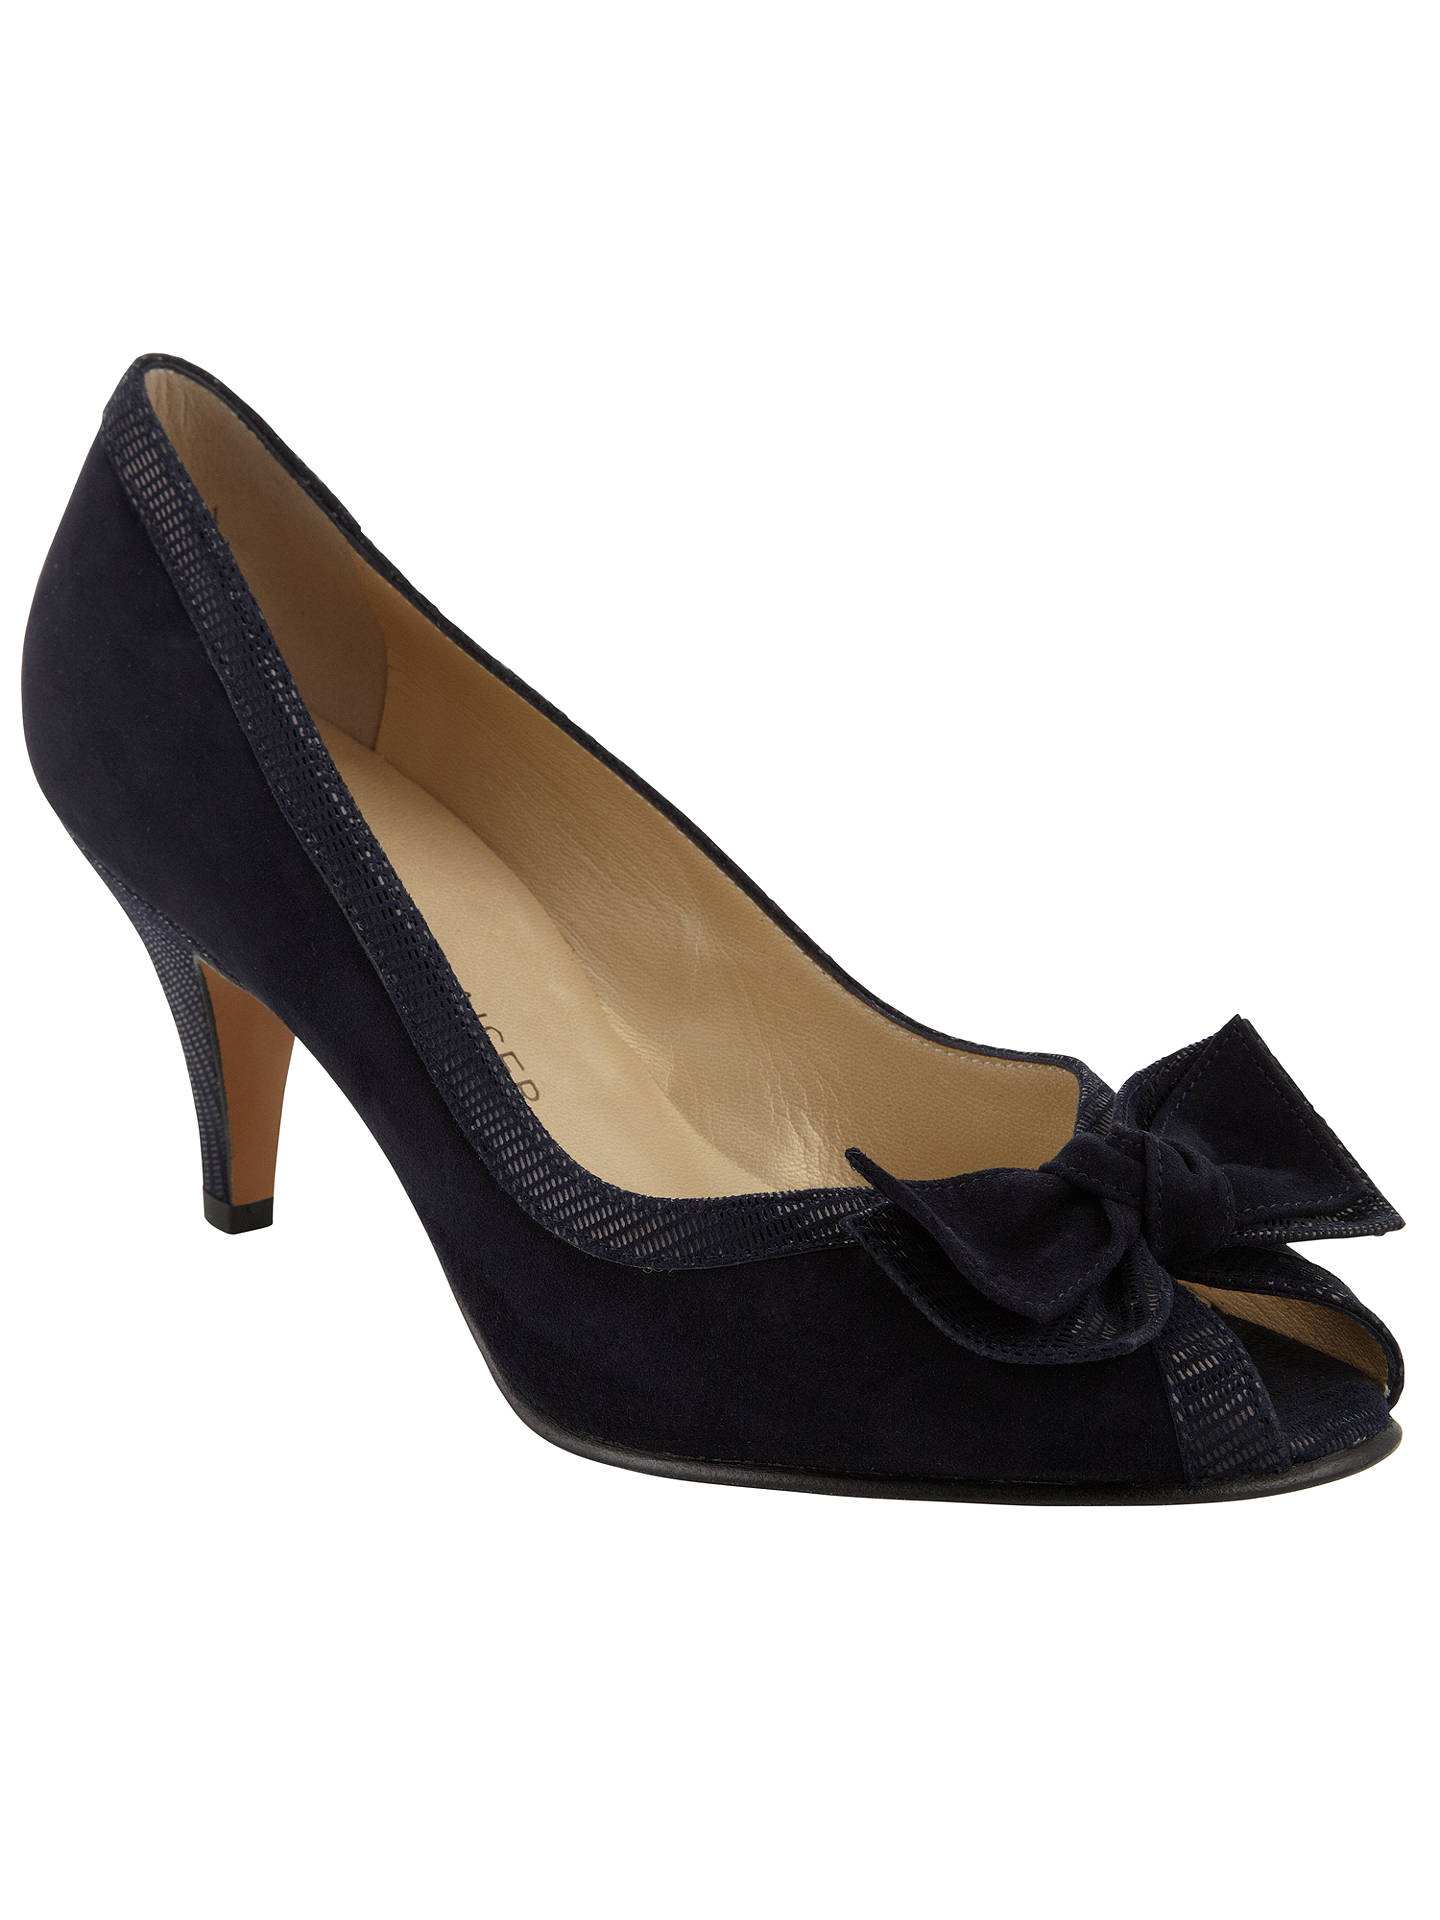 best website f6355 1c38e Peter Kaiser Satyr Peep Toe Suede Court Shoes at John Lewis ...